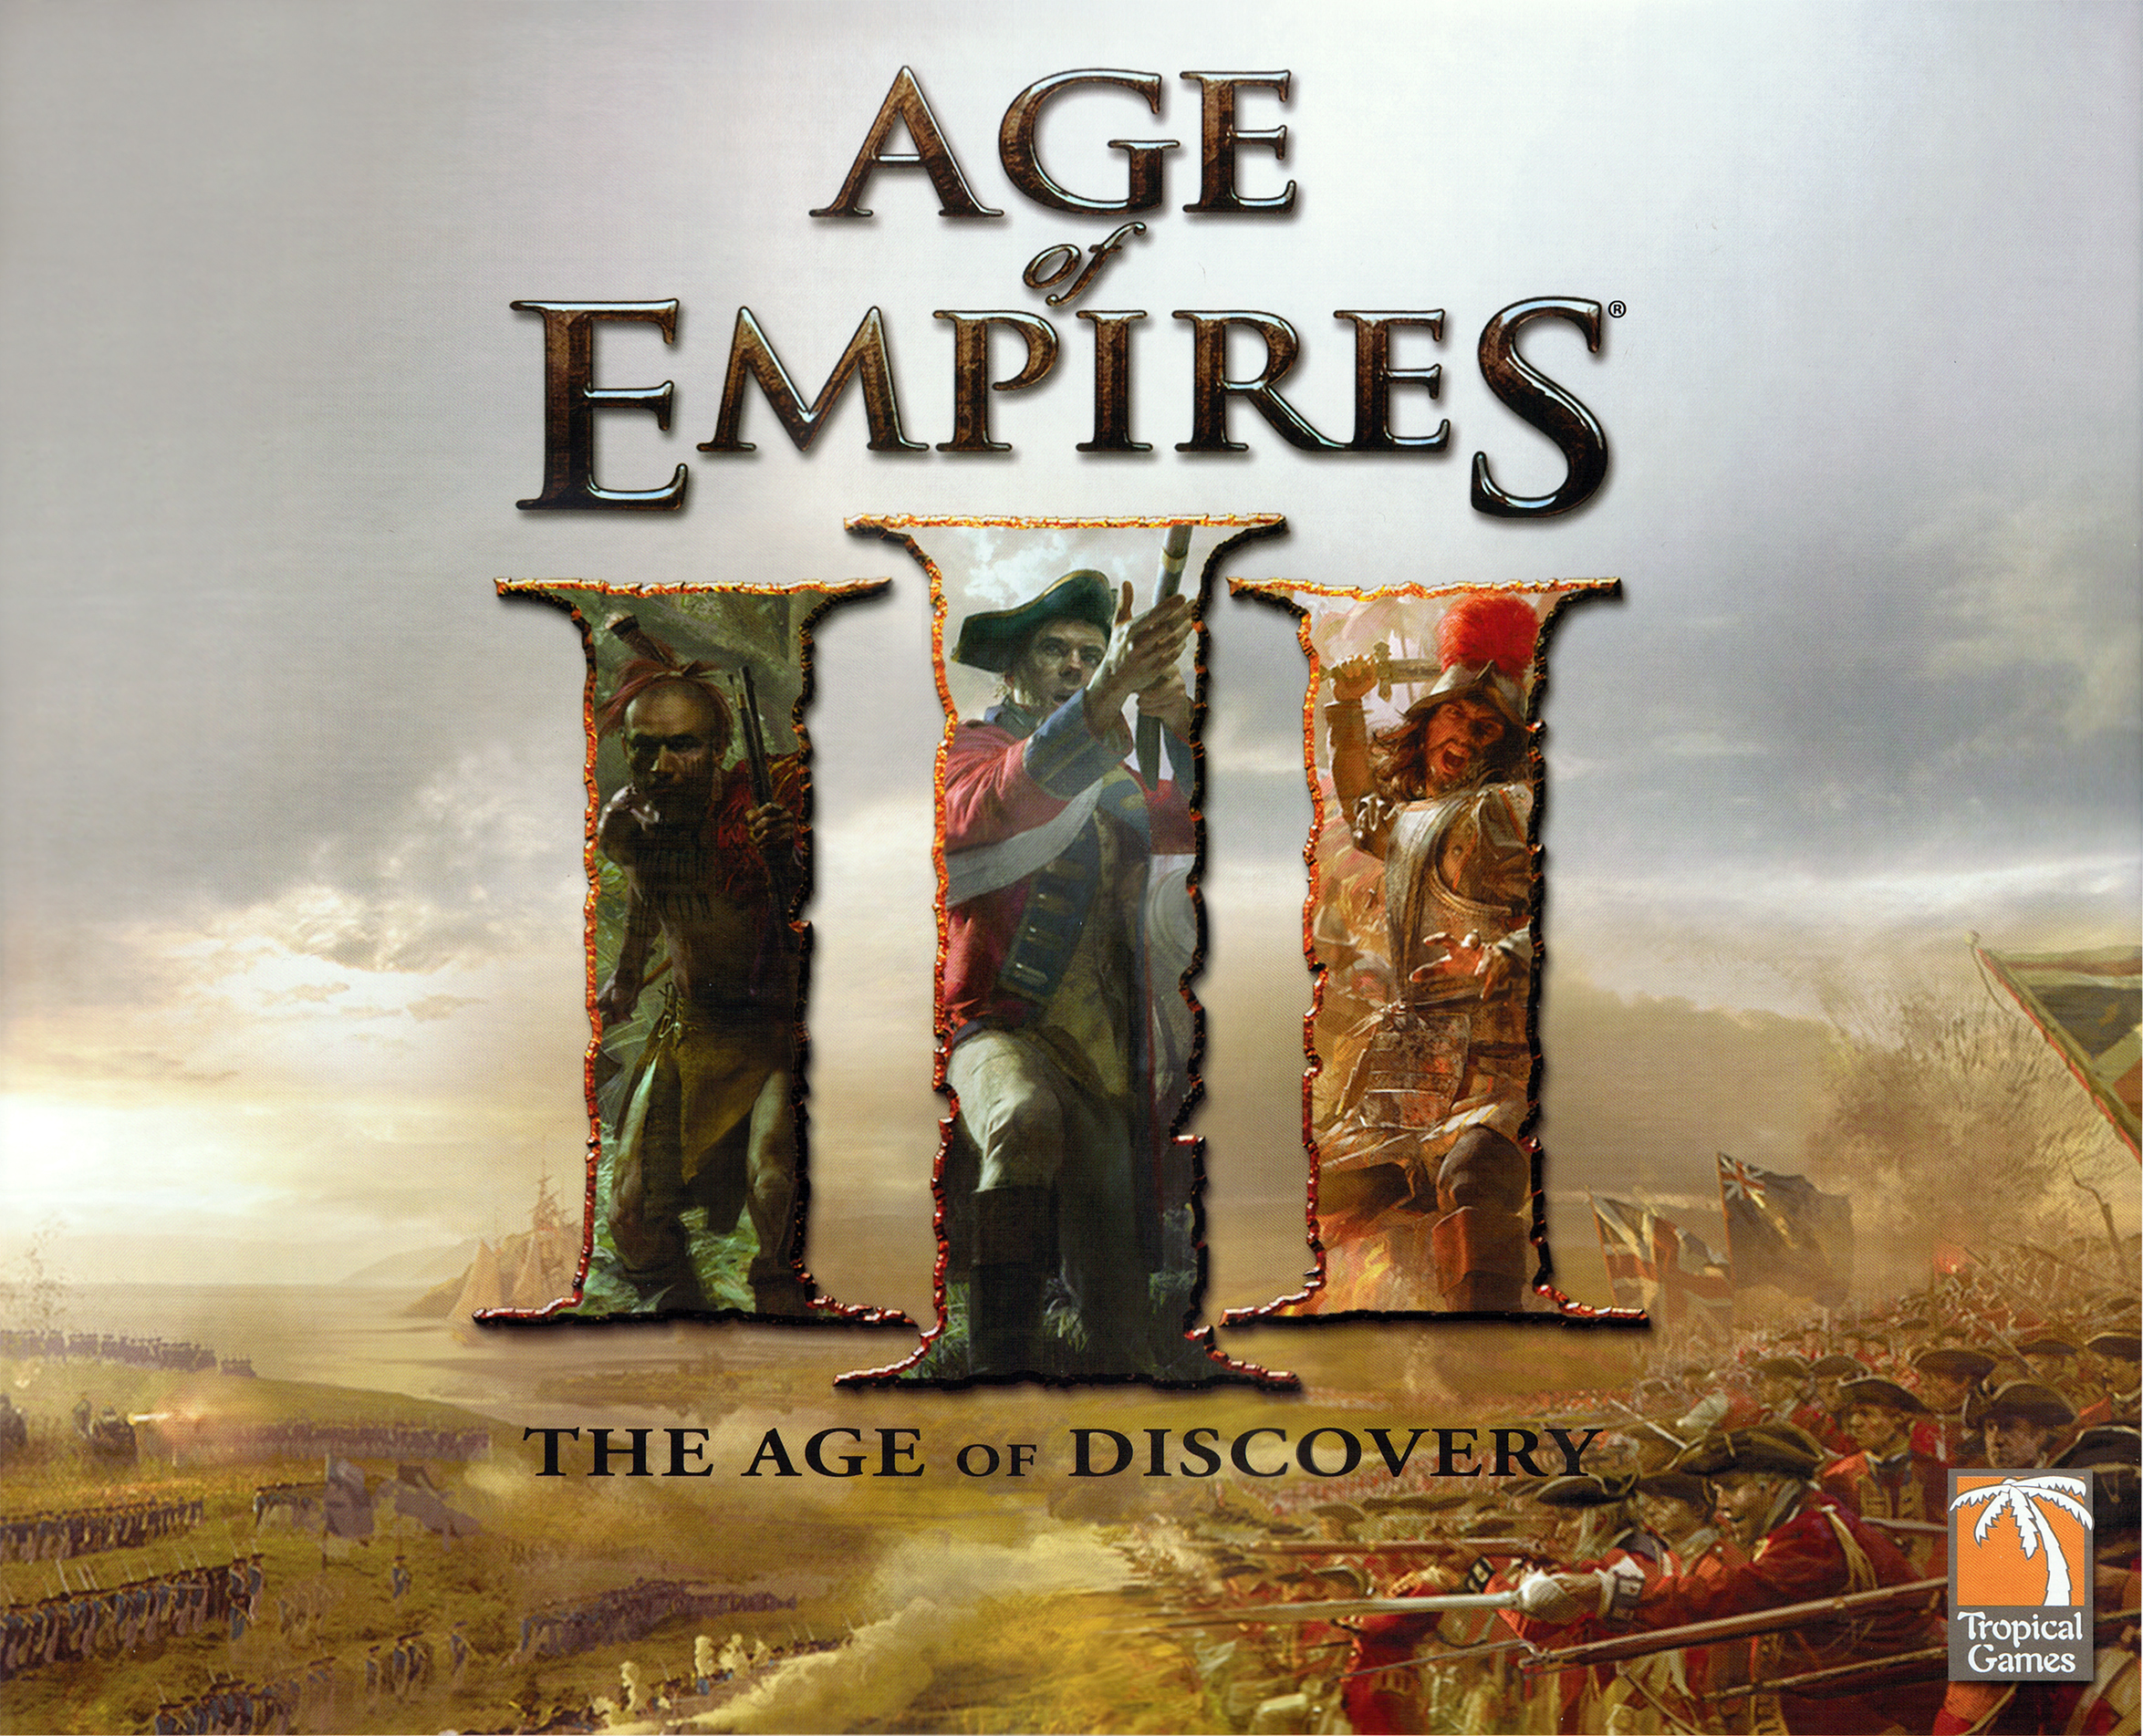 HQ Age Of Empires III Wallpapers | File 5055.99Kb